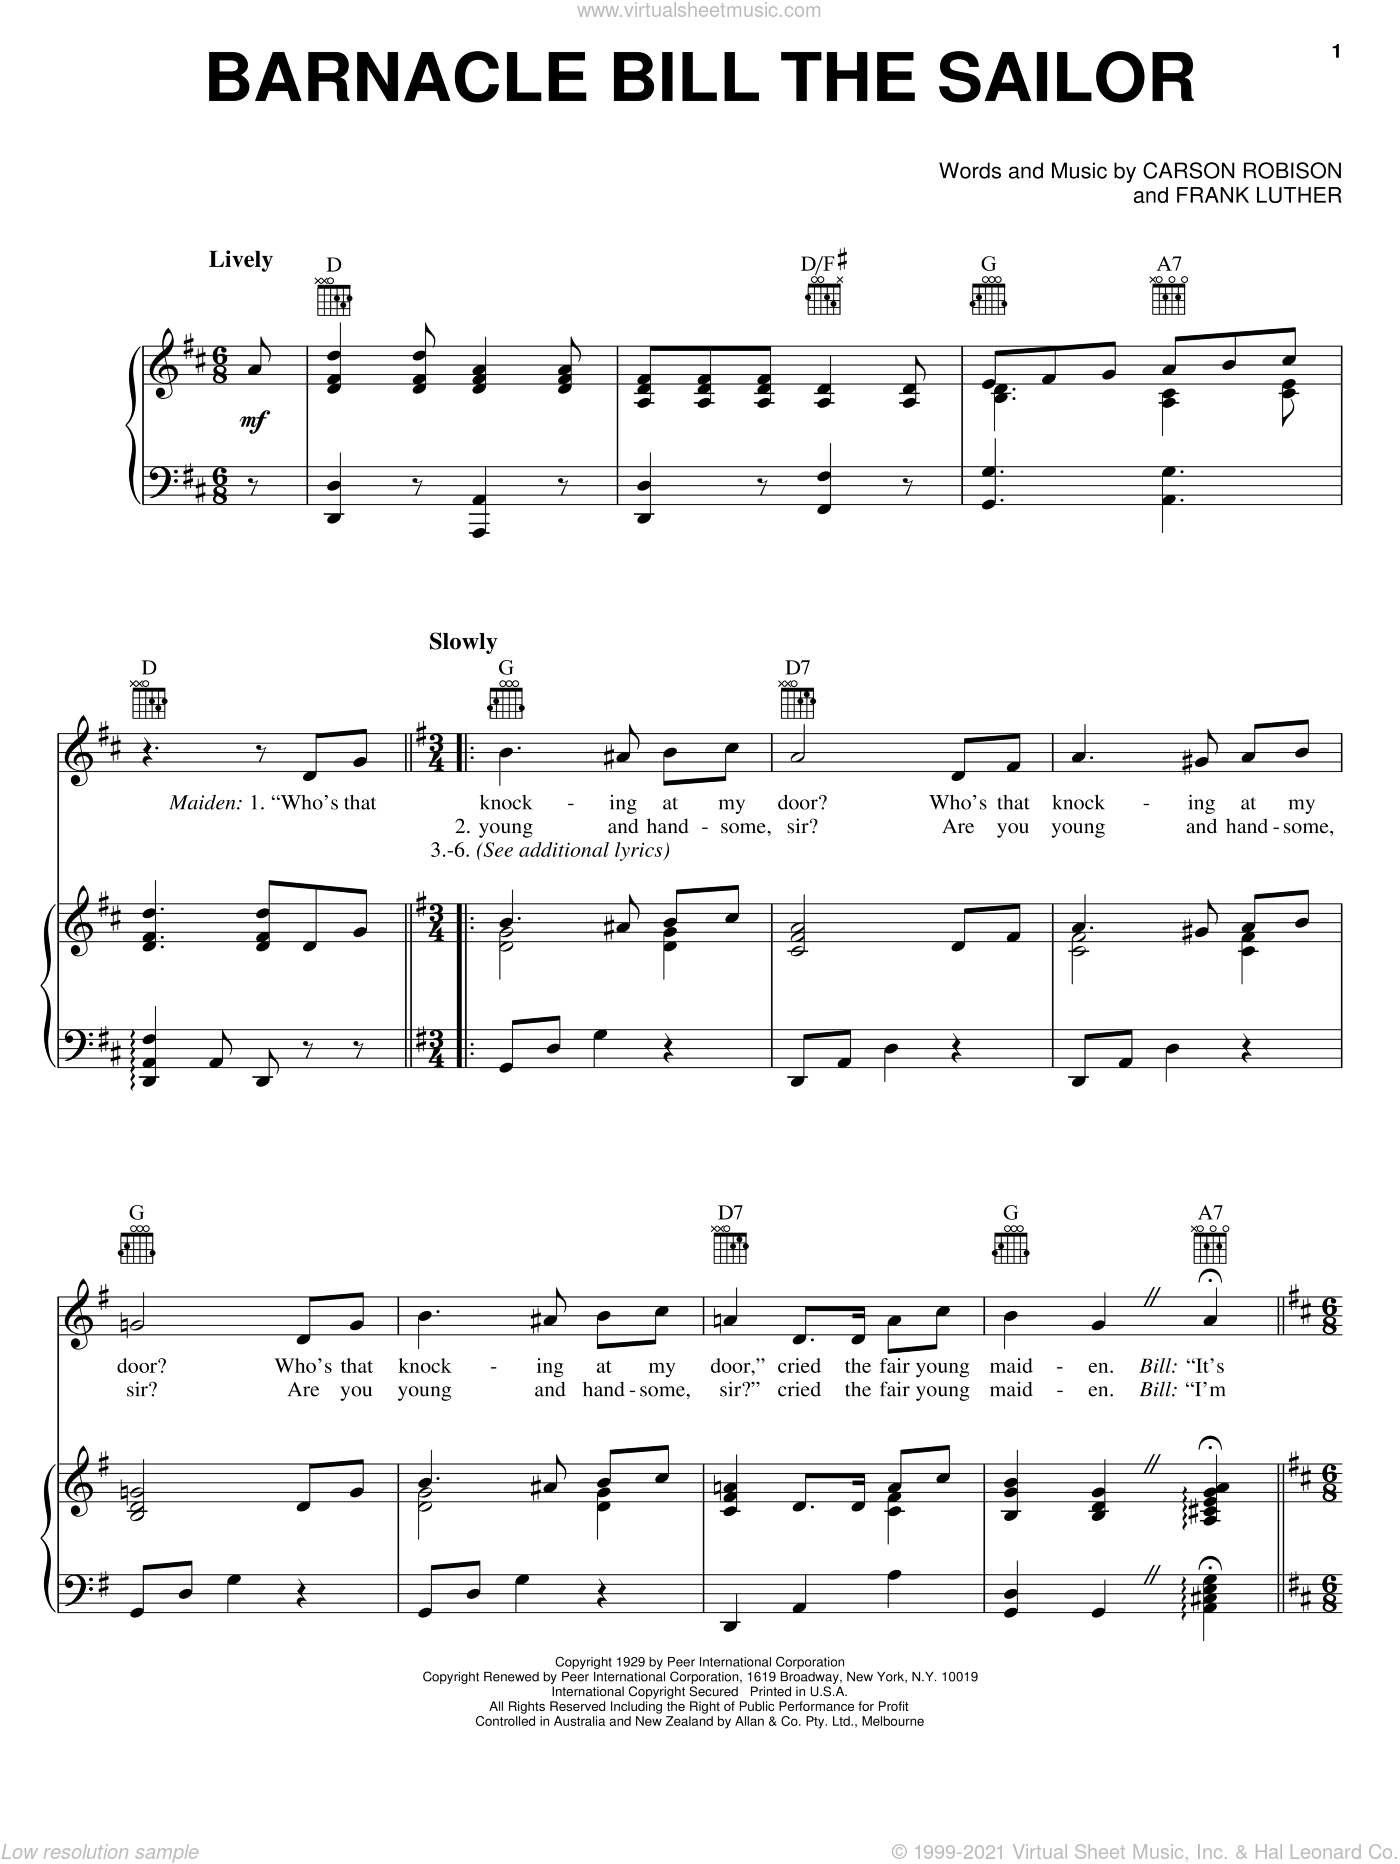 Barnacle Bill The Sailor sheet music for voice, piano or guitar by Carson Robison